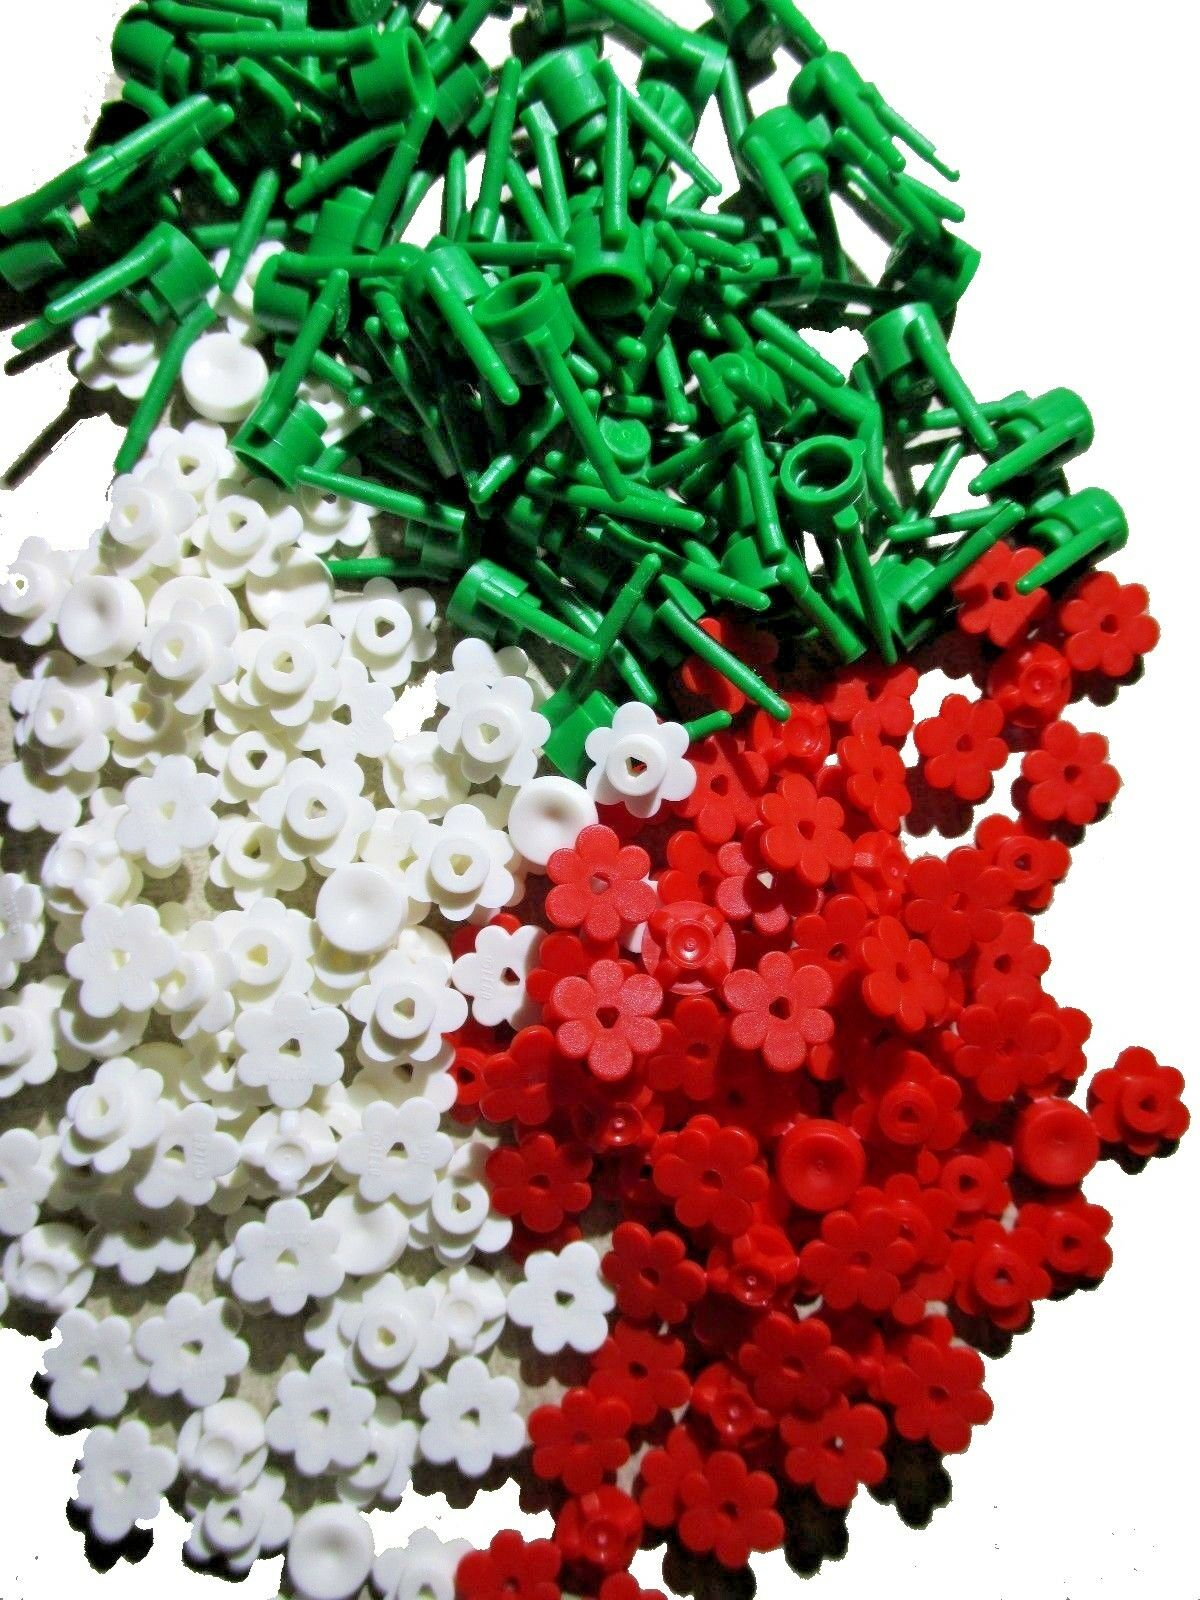 100x New Lego Flowers Red And White Plants Stems Spruces Mix